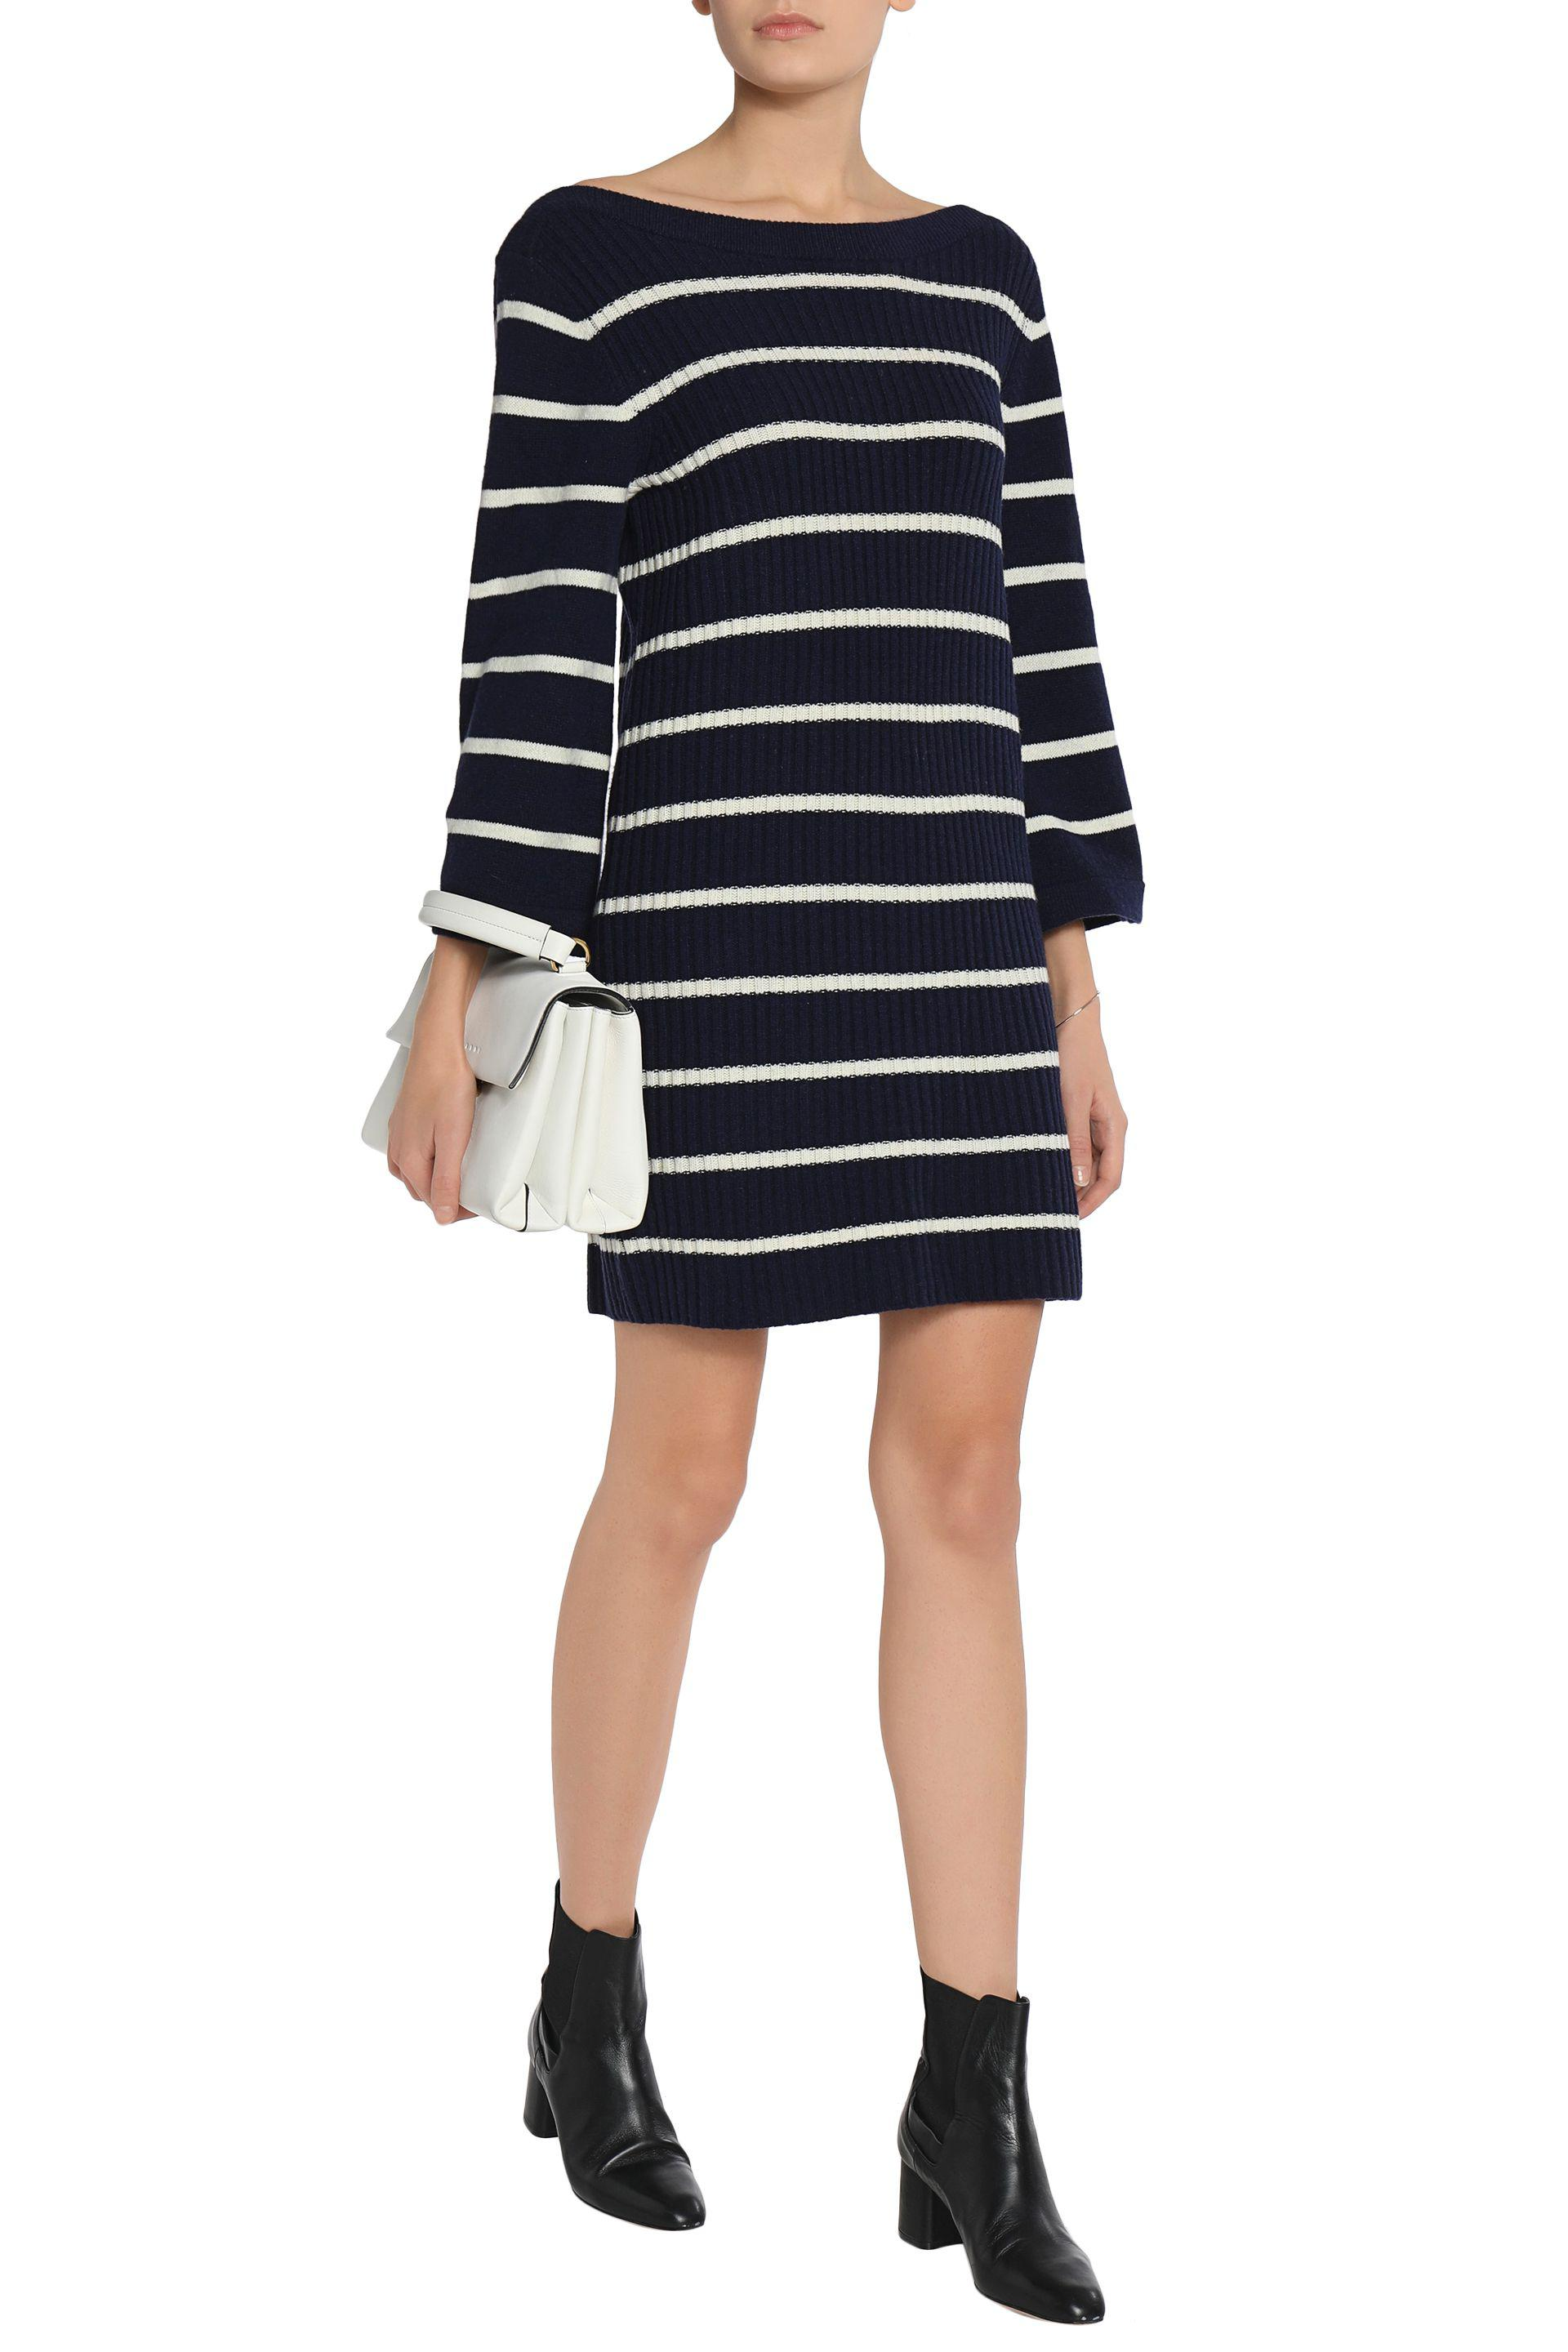 Sale Get To Buy Ganni Woman Ribbed Striped Merino Wool-blend Mini Dress Midnight Blue Size M Ganni Cheap Footaction Get To Buy Sale Online Wholesale Quality Wide Range Of Cheap Price ximL0YXC3R